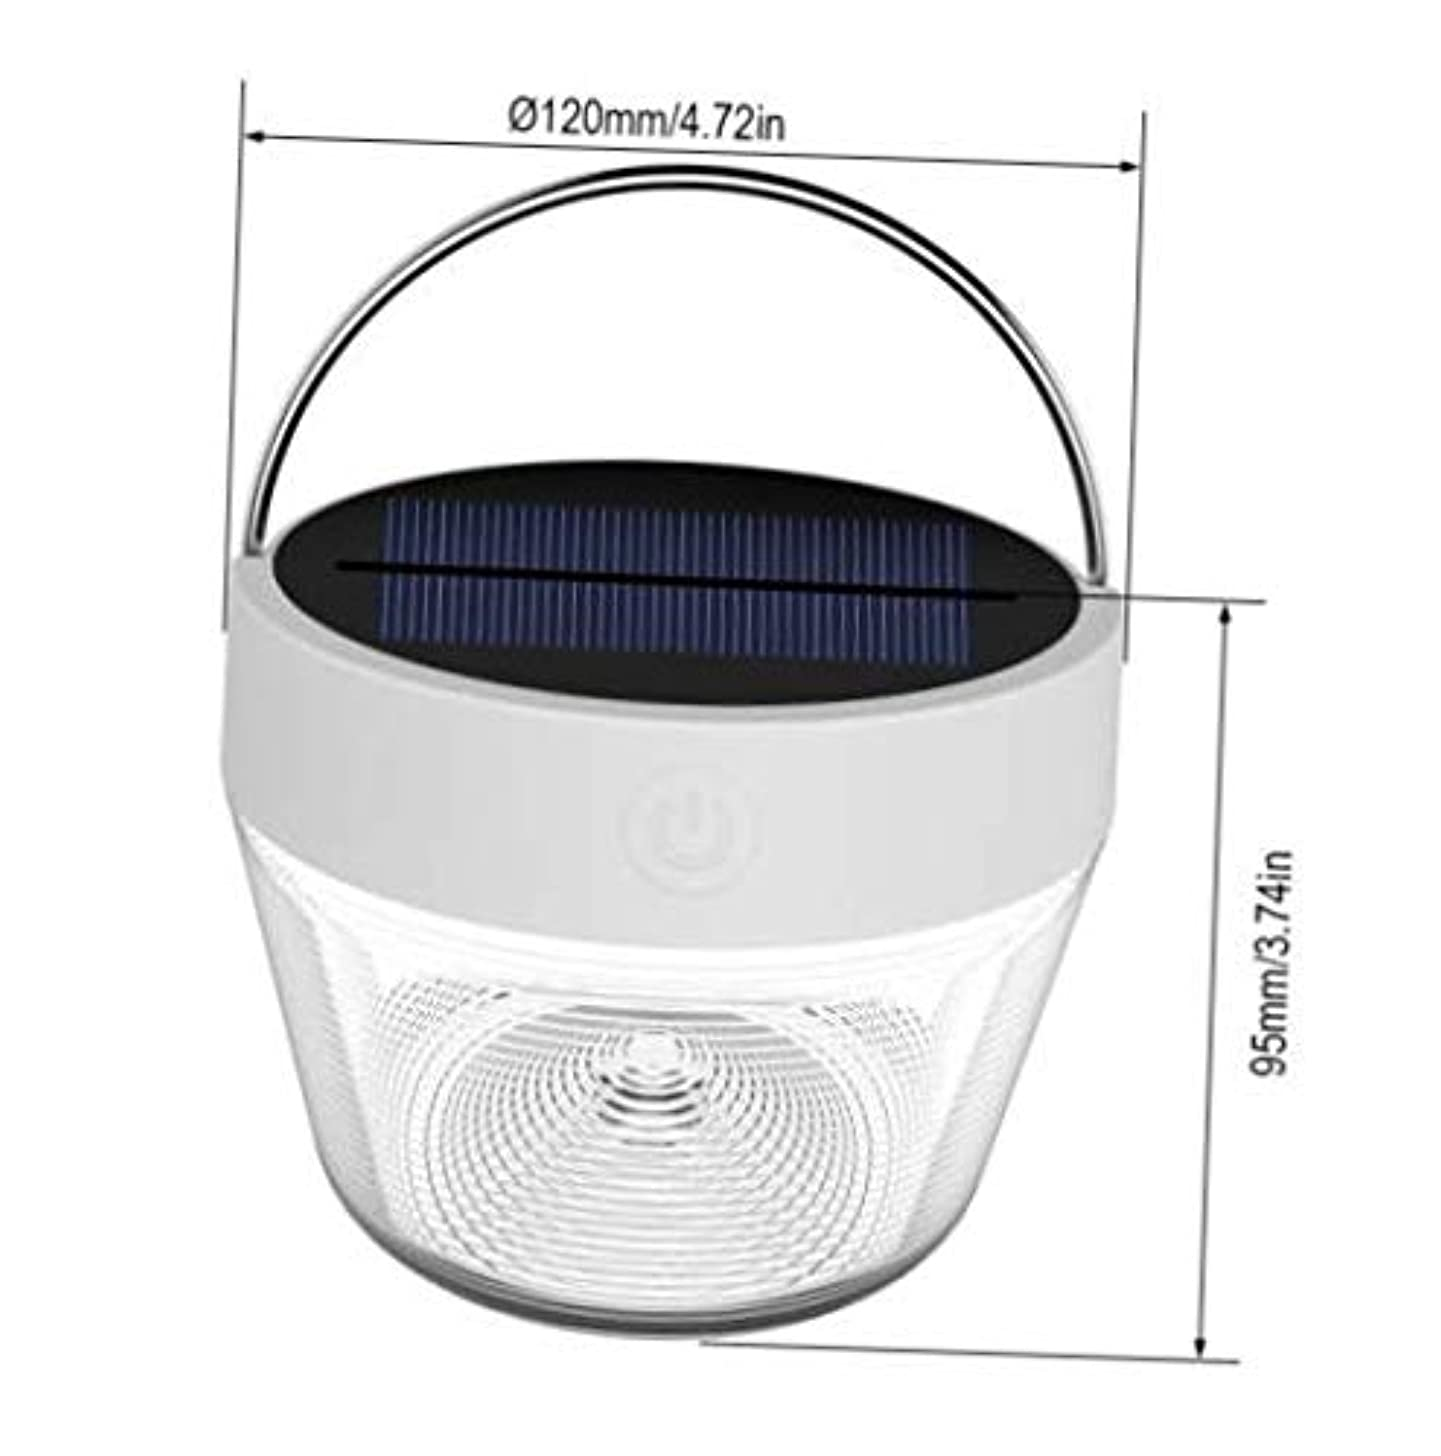 LED Light Dimmable Night Light Warm White RGB Color Solar Powered Camping Lanterns Lamp